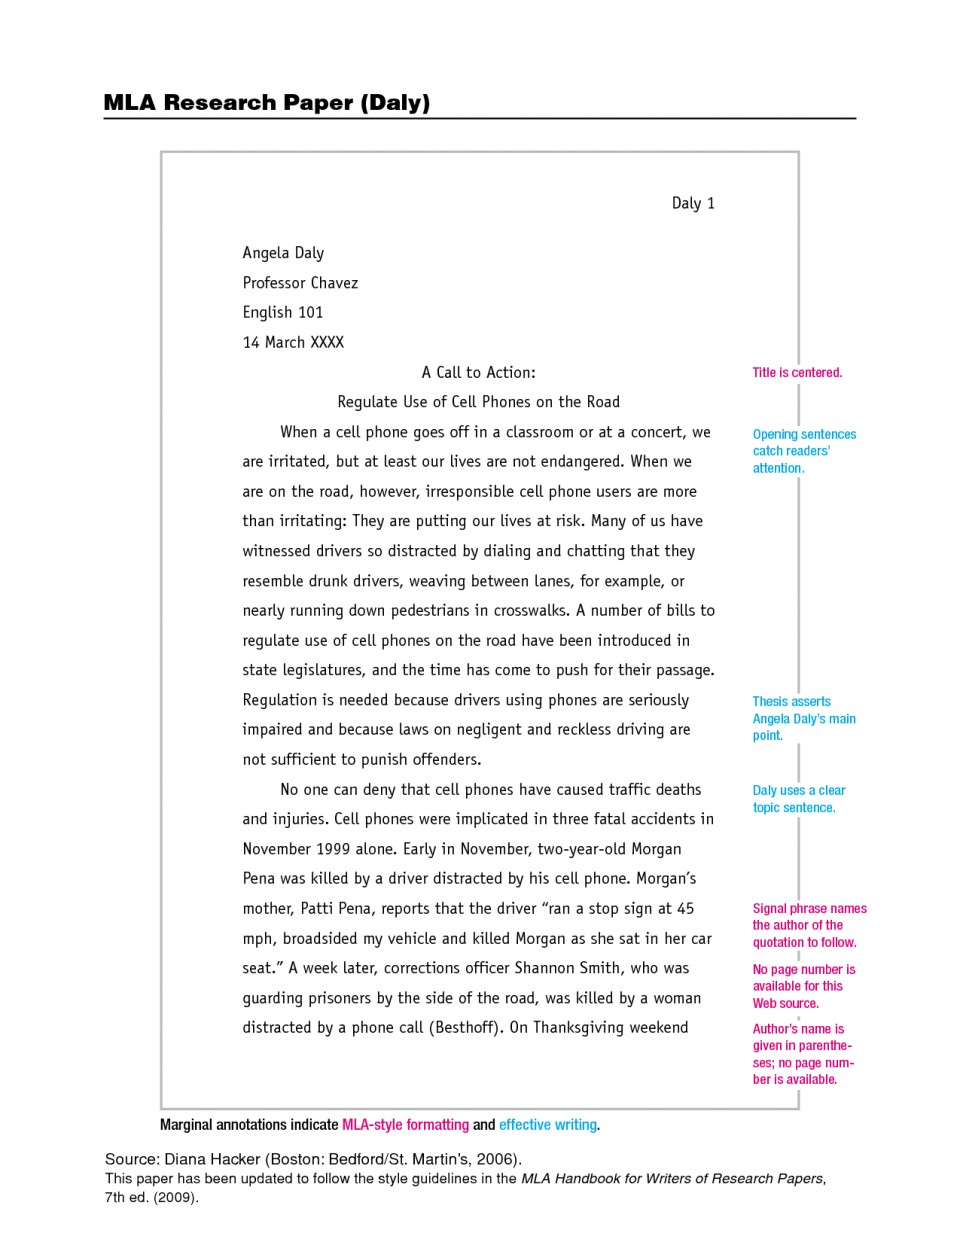 001 Research Paper Mla Format For Best Papers Title Page Citation Outline 960